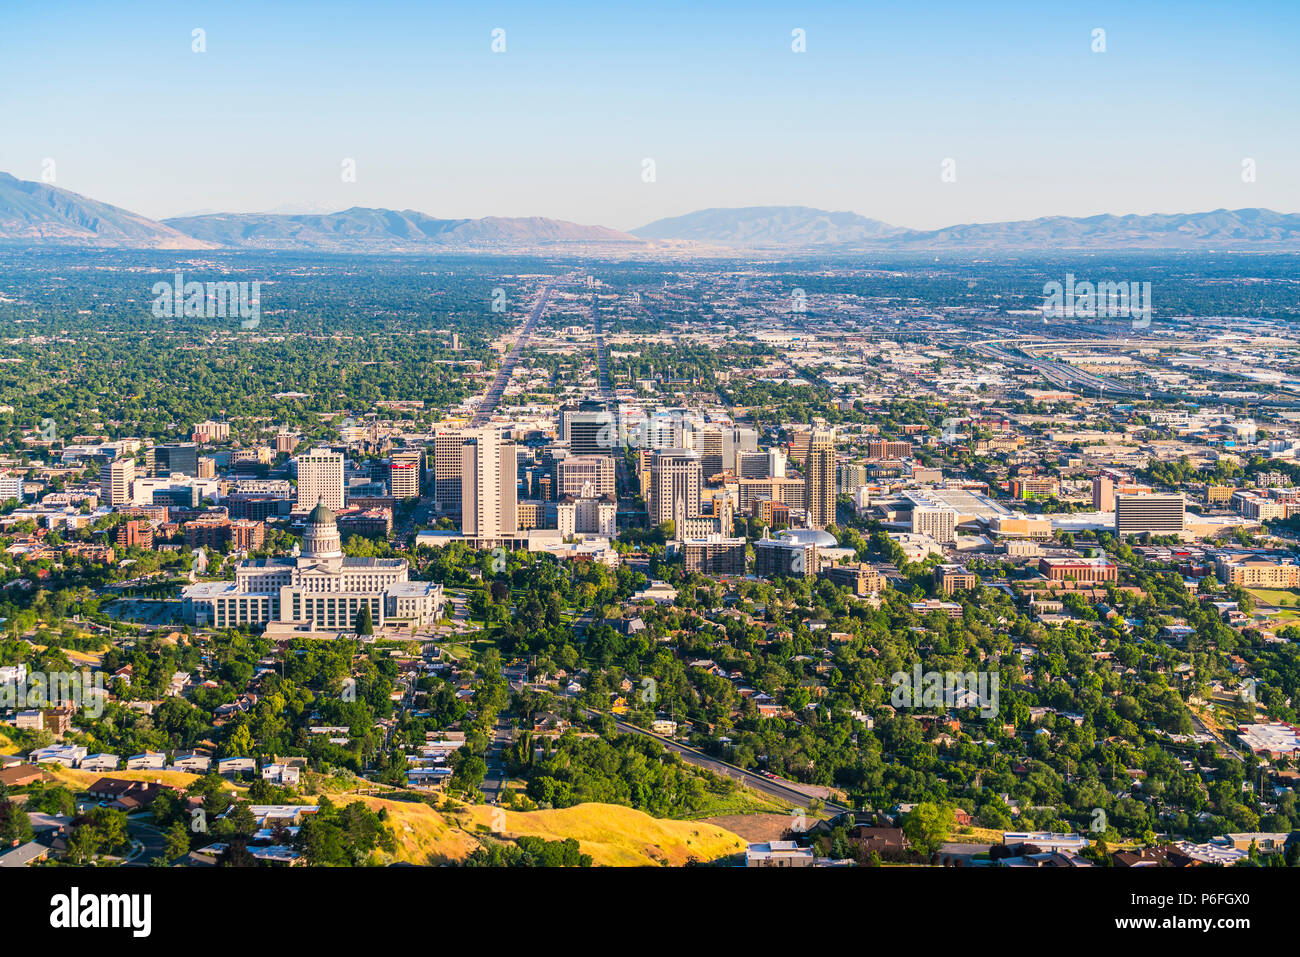 Salt Lake City Scenic Imágenes De Stock & Salt Lake City Scenic ...